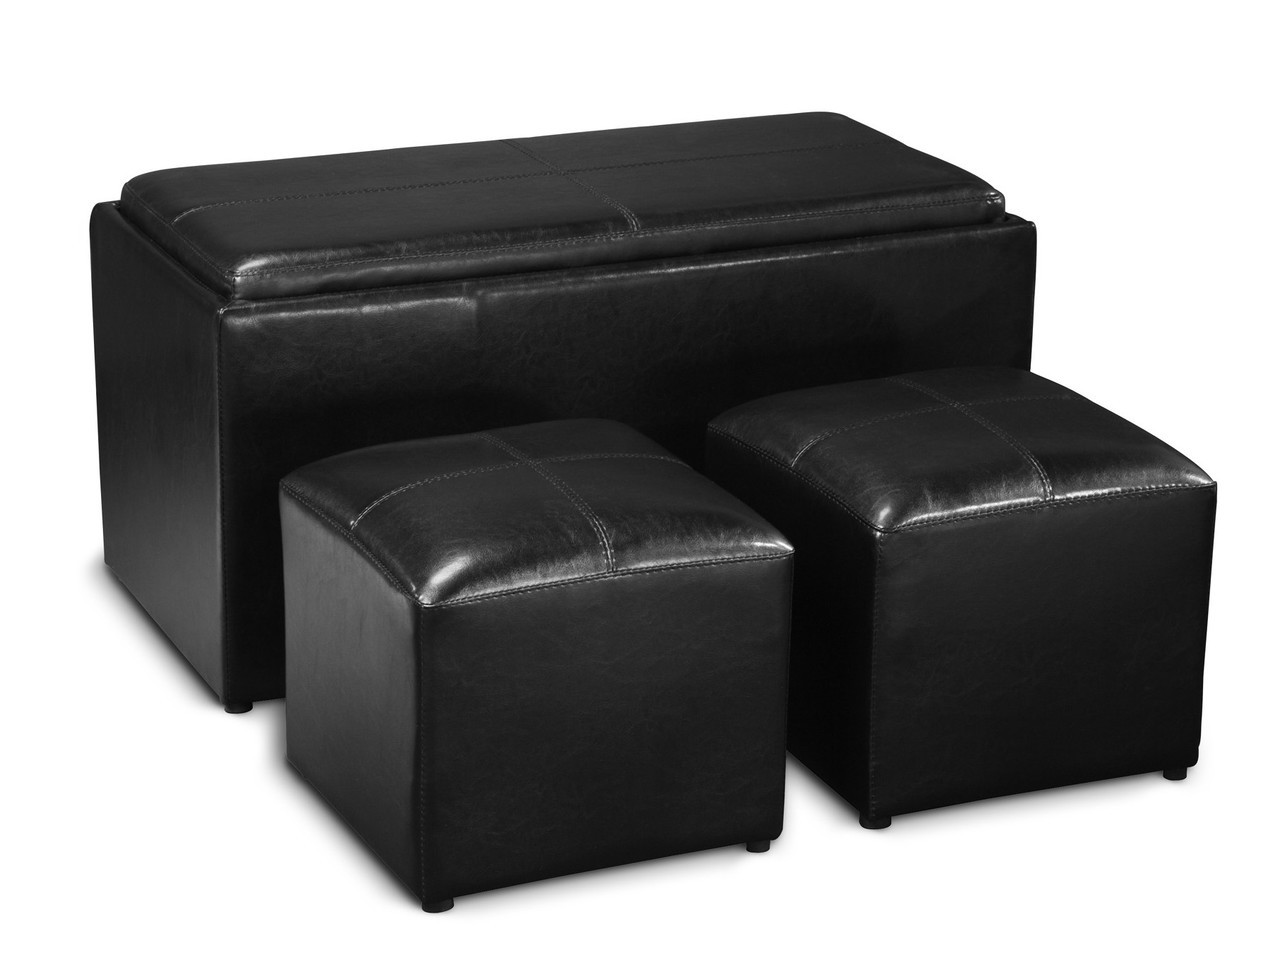 Strange Black 3 Piece Storage Bench And Ottoman Set Ncnpc Chair Design For Home Ncnpcorg